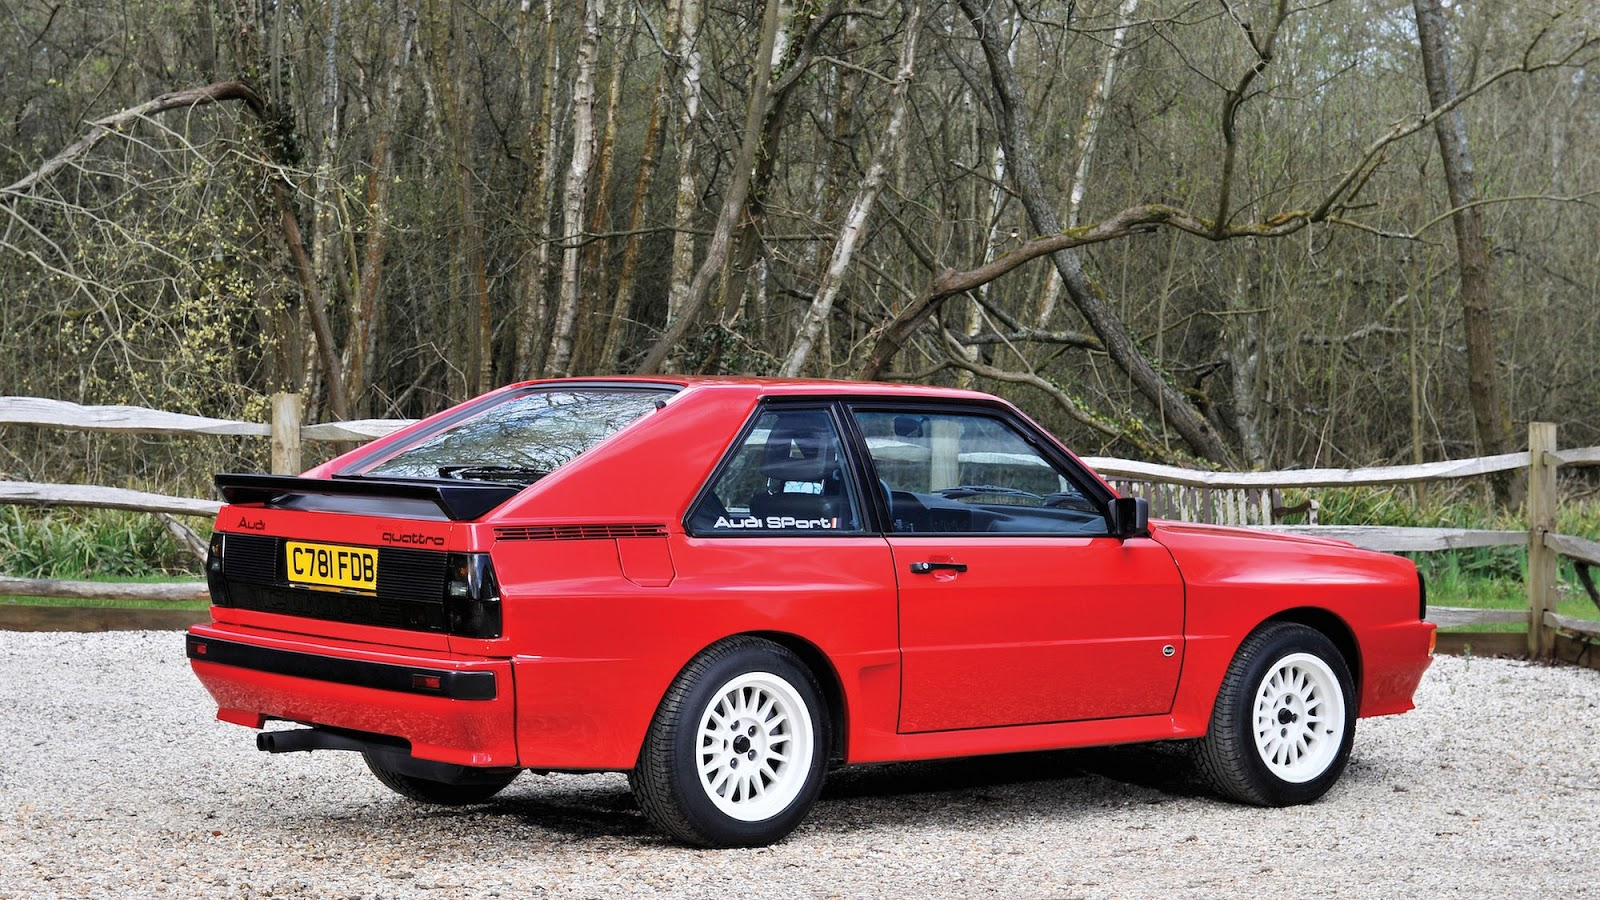 Stunning 1986 Audi Sport Quattro Sells For 536 000 At Auction Carscoops